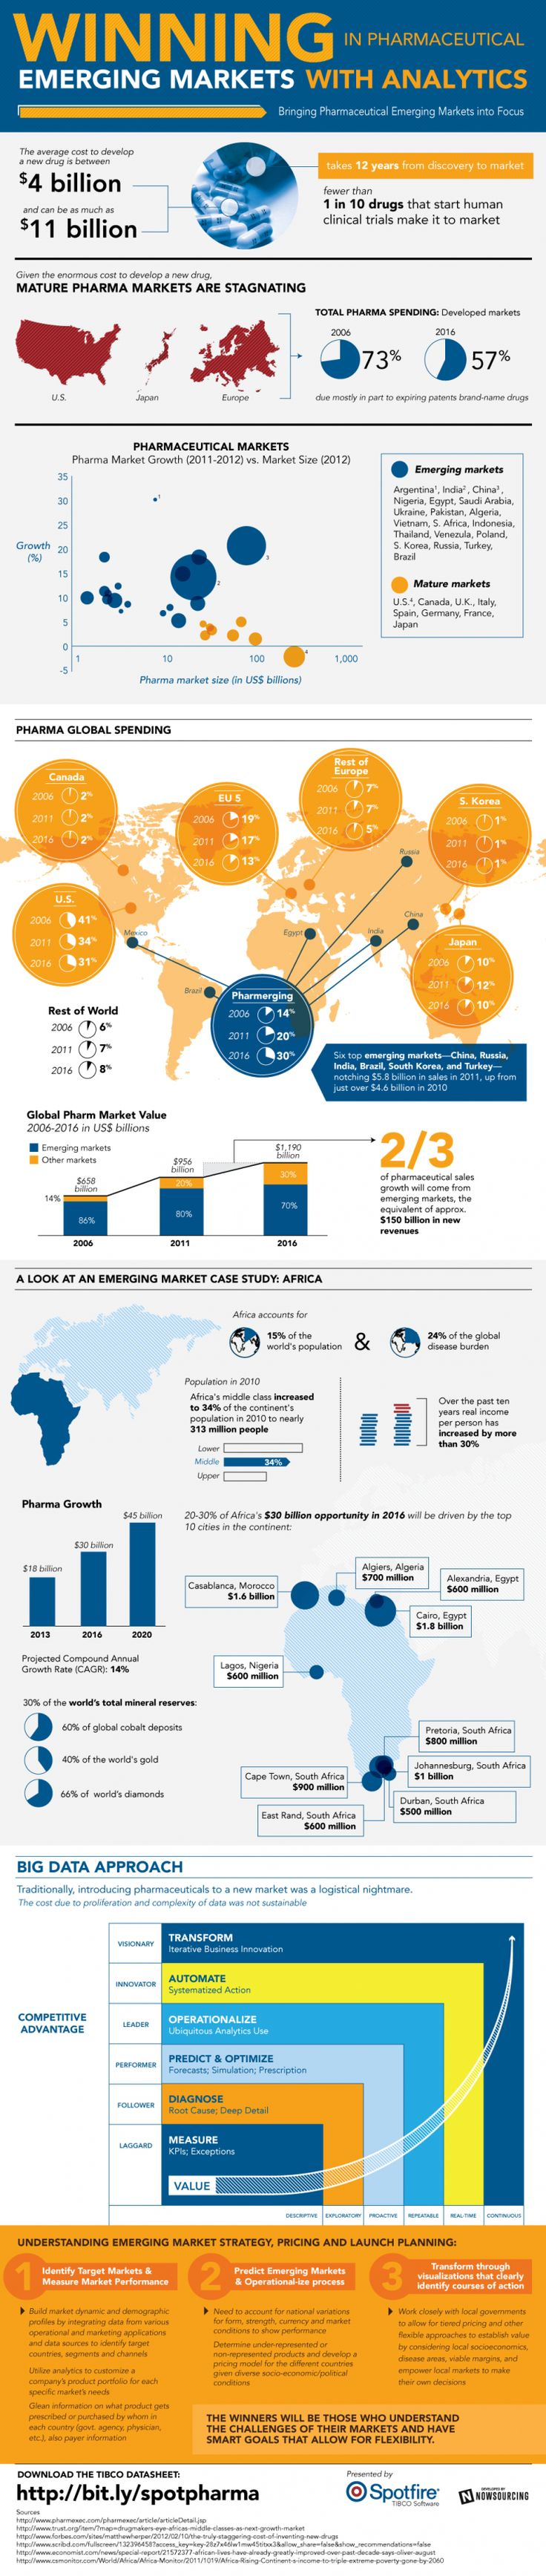 Best 25 pharmaceutical sales ideas on pinterest pharmaceutical winning in pharmaceutical emerging markets with analytics in infographics xflitez Image collections